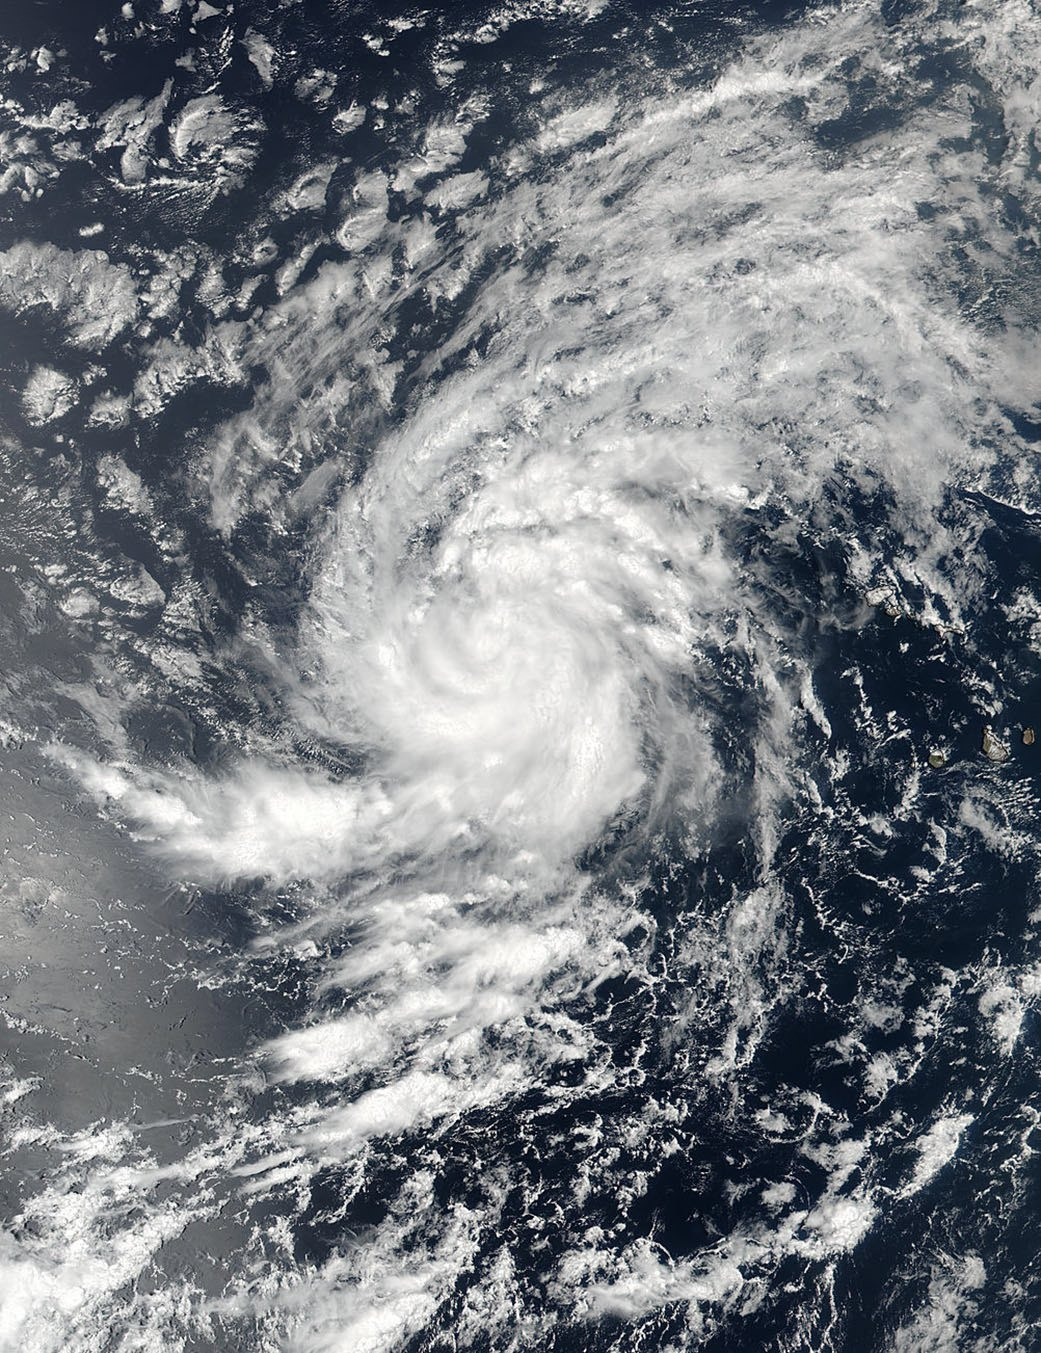 A handout photo made available by NASA shows an image acquired by the joint NASA/NOAA Suomi National Polar-orbiting Partnership (NPP) satellite of then Tropical Storm Irma in the Eastern Atlantic Ocean on August 30. (AAP)